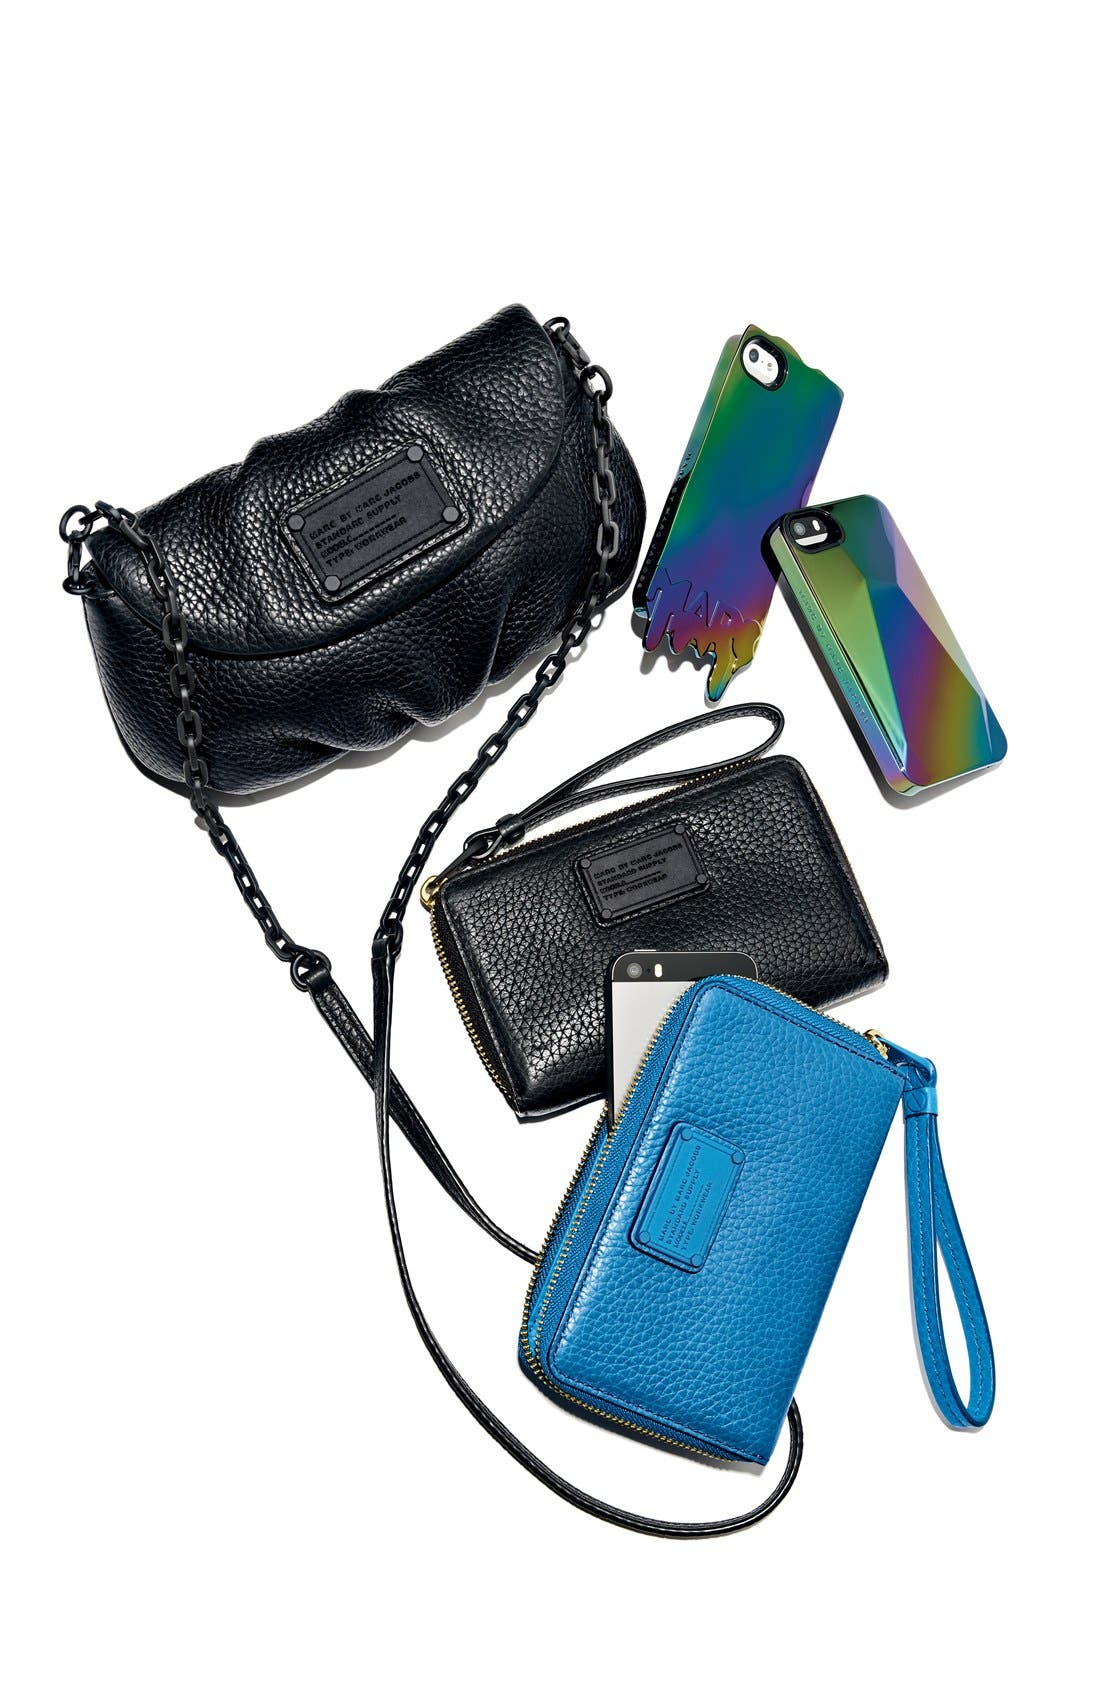 MARC BY MARC JACOBS 'Metallic 3D' iPhone 5 & 5s Case,                             Alternate thumbnail 2, color,                             001